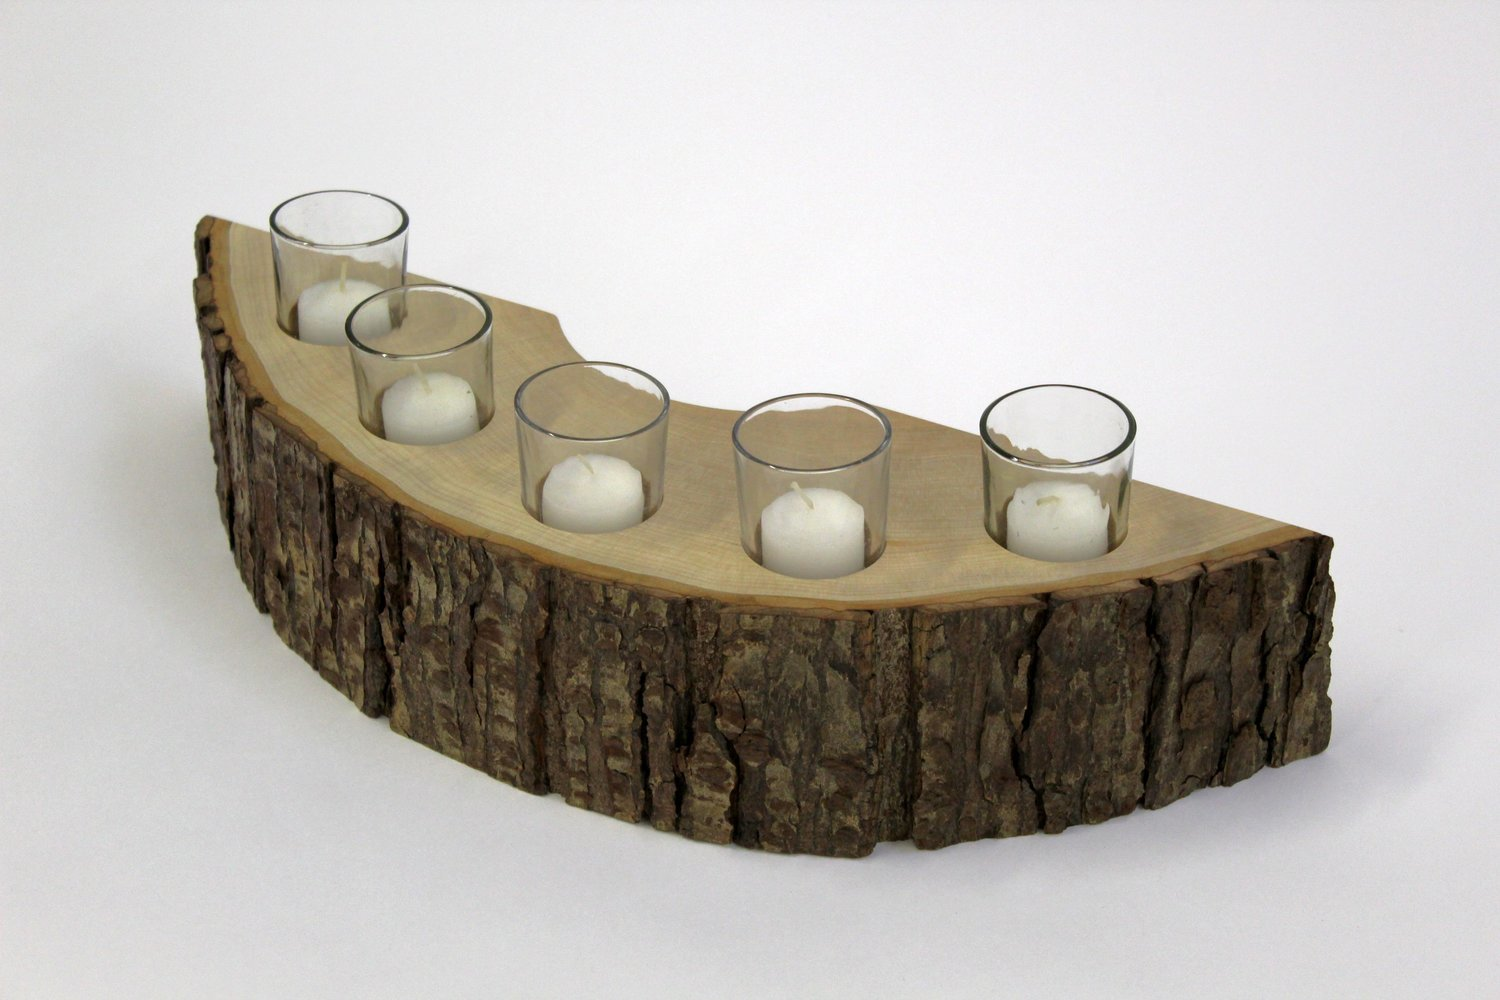 Rustic Wooden Candle Holder 5 Piece Candle Holder